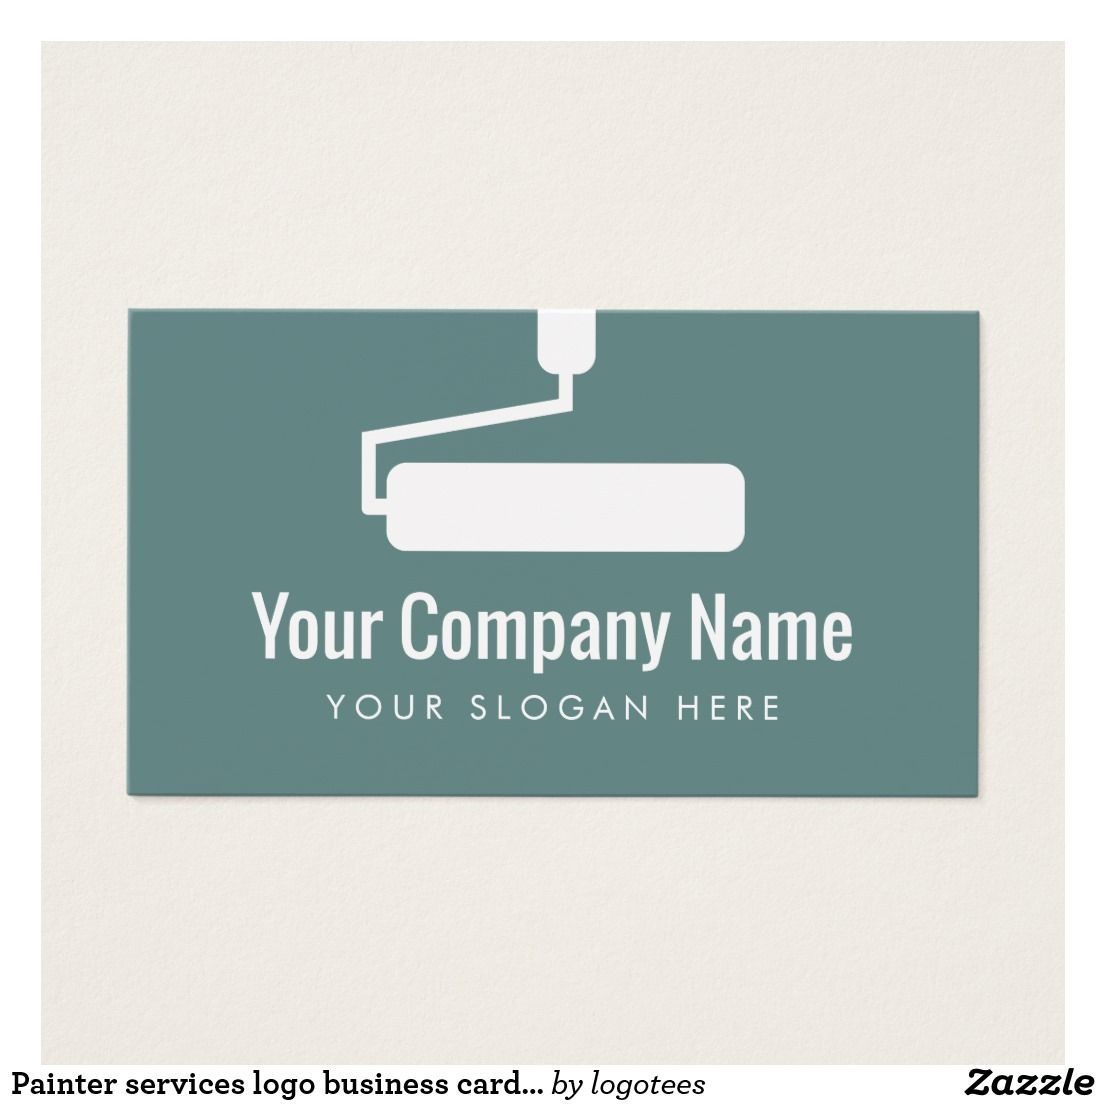 Painter services logo business card template | Visit cards, Card ...